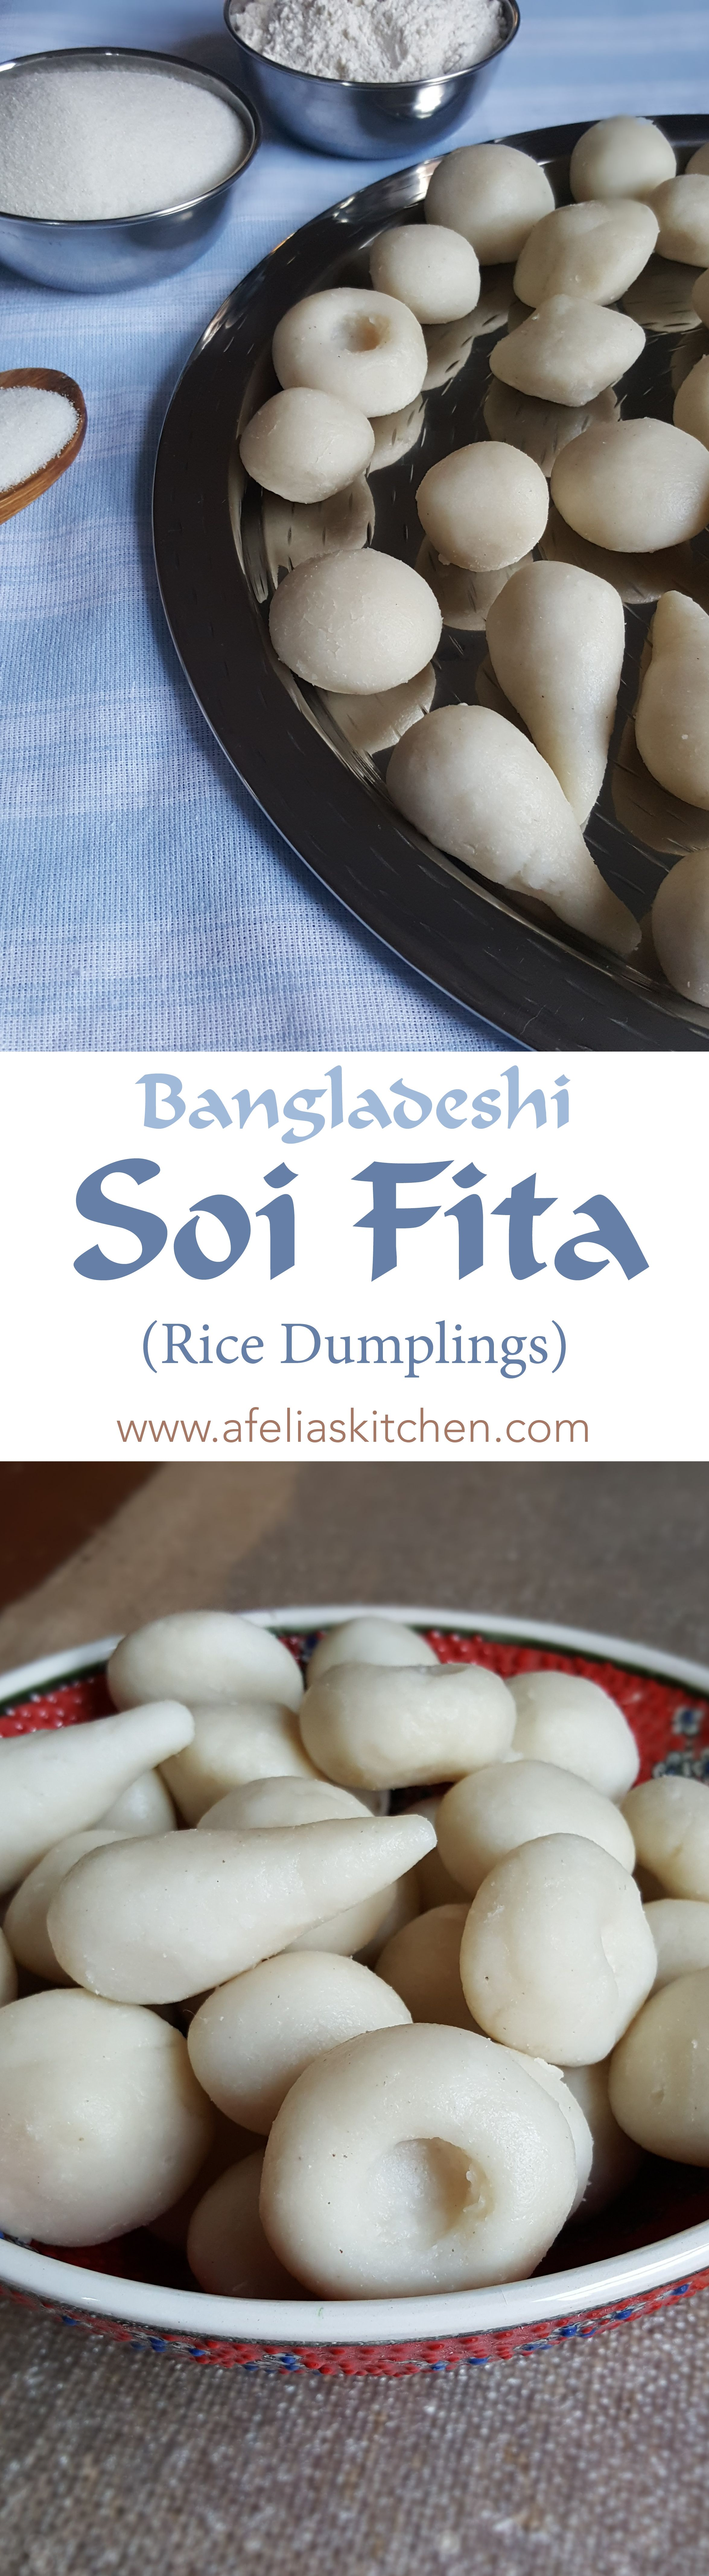 Alhamdulillah just have the iftar bangladeshi food pinterest bangladeshi soi fita rice dumplings step by step easy to follow photo recipe forumfinder Choice Image